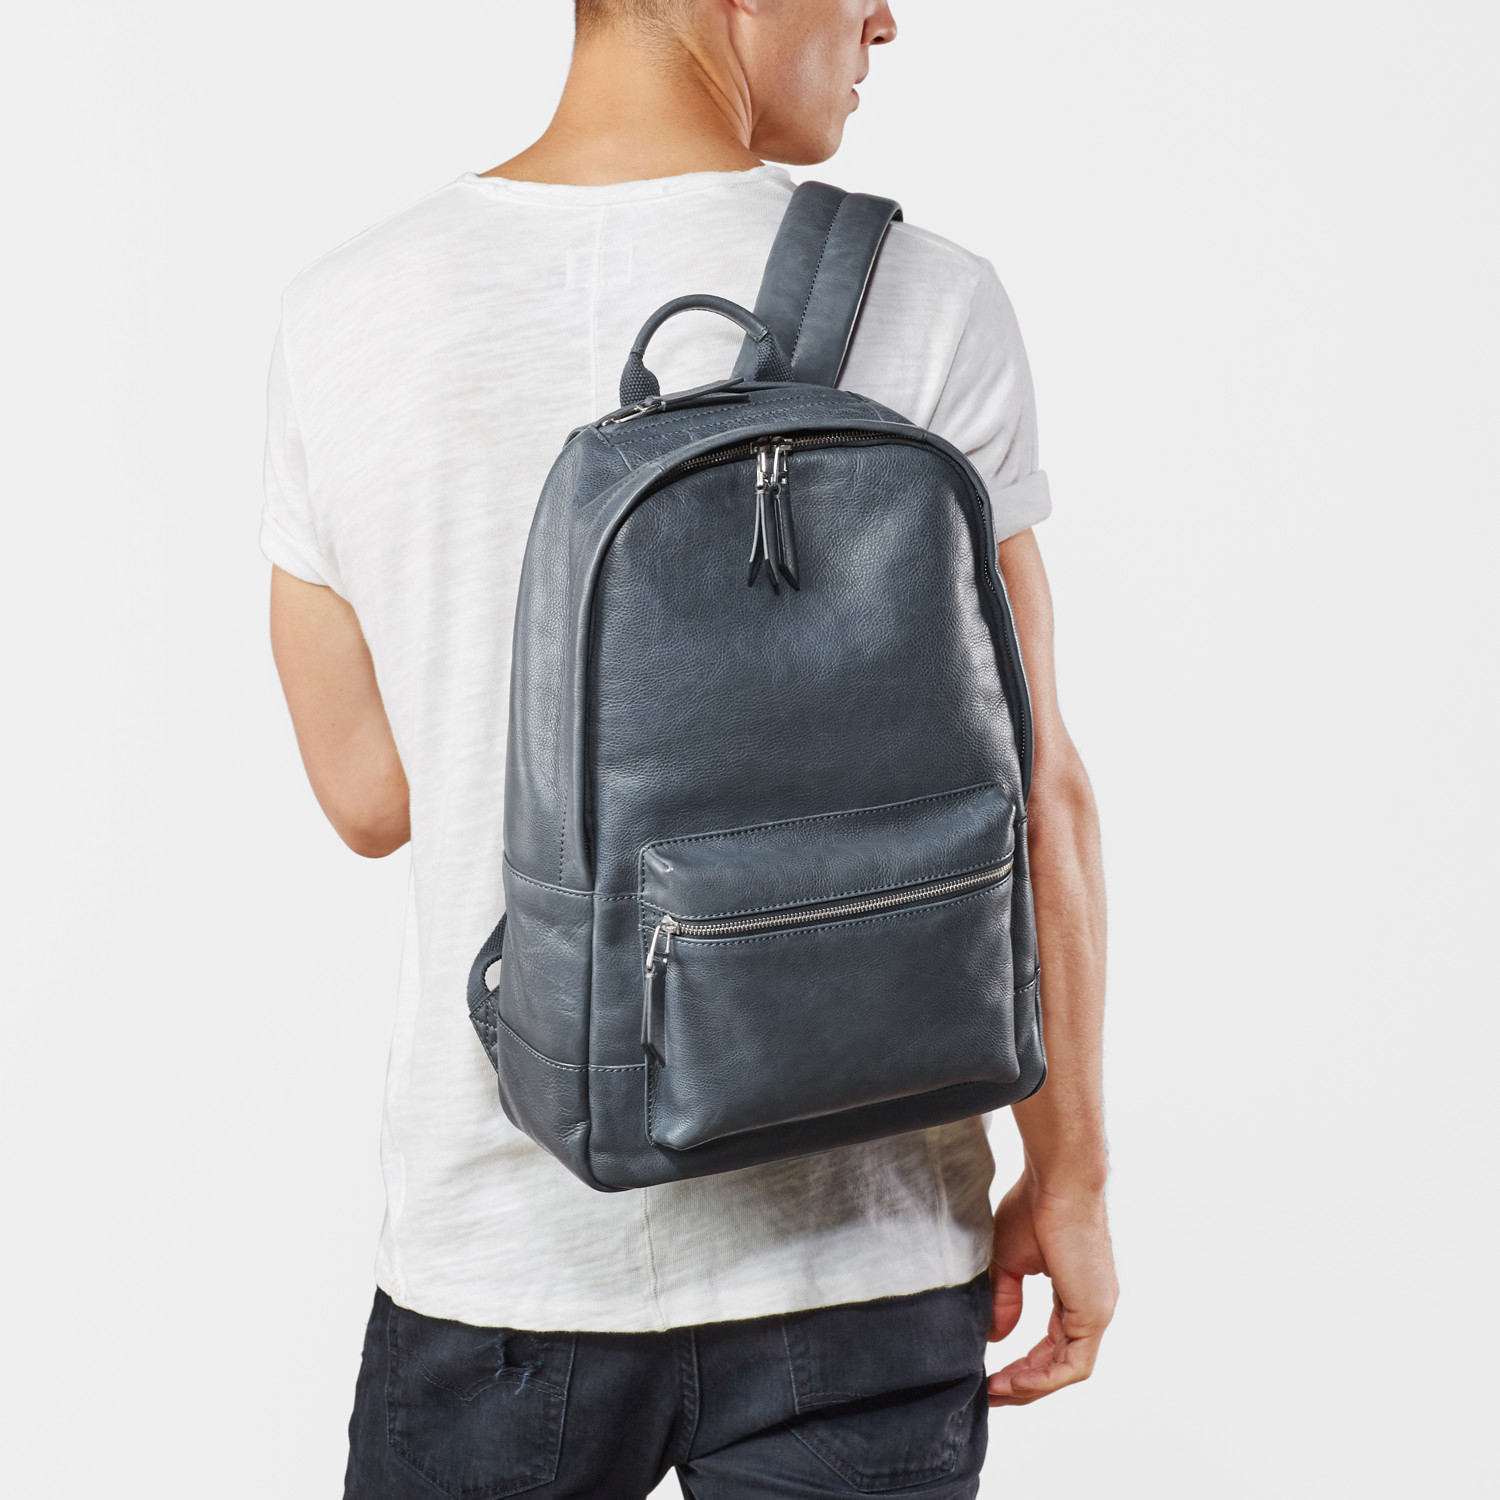 eb59f1f7e6 Estate Backpack - Fossil